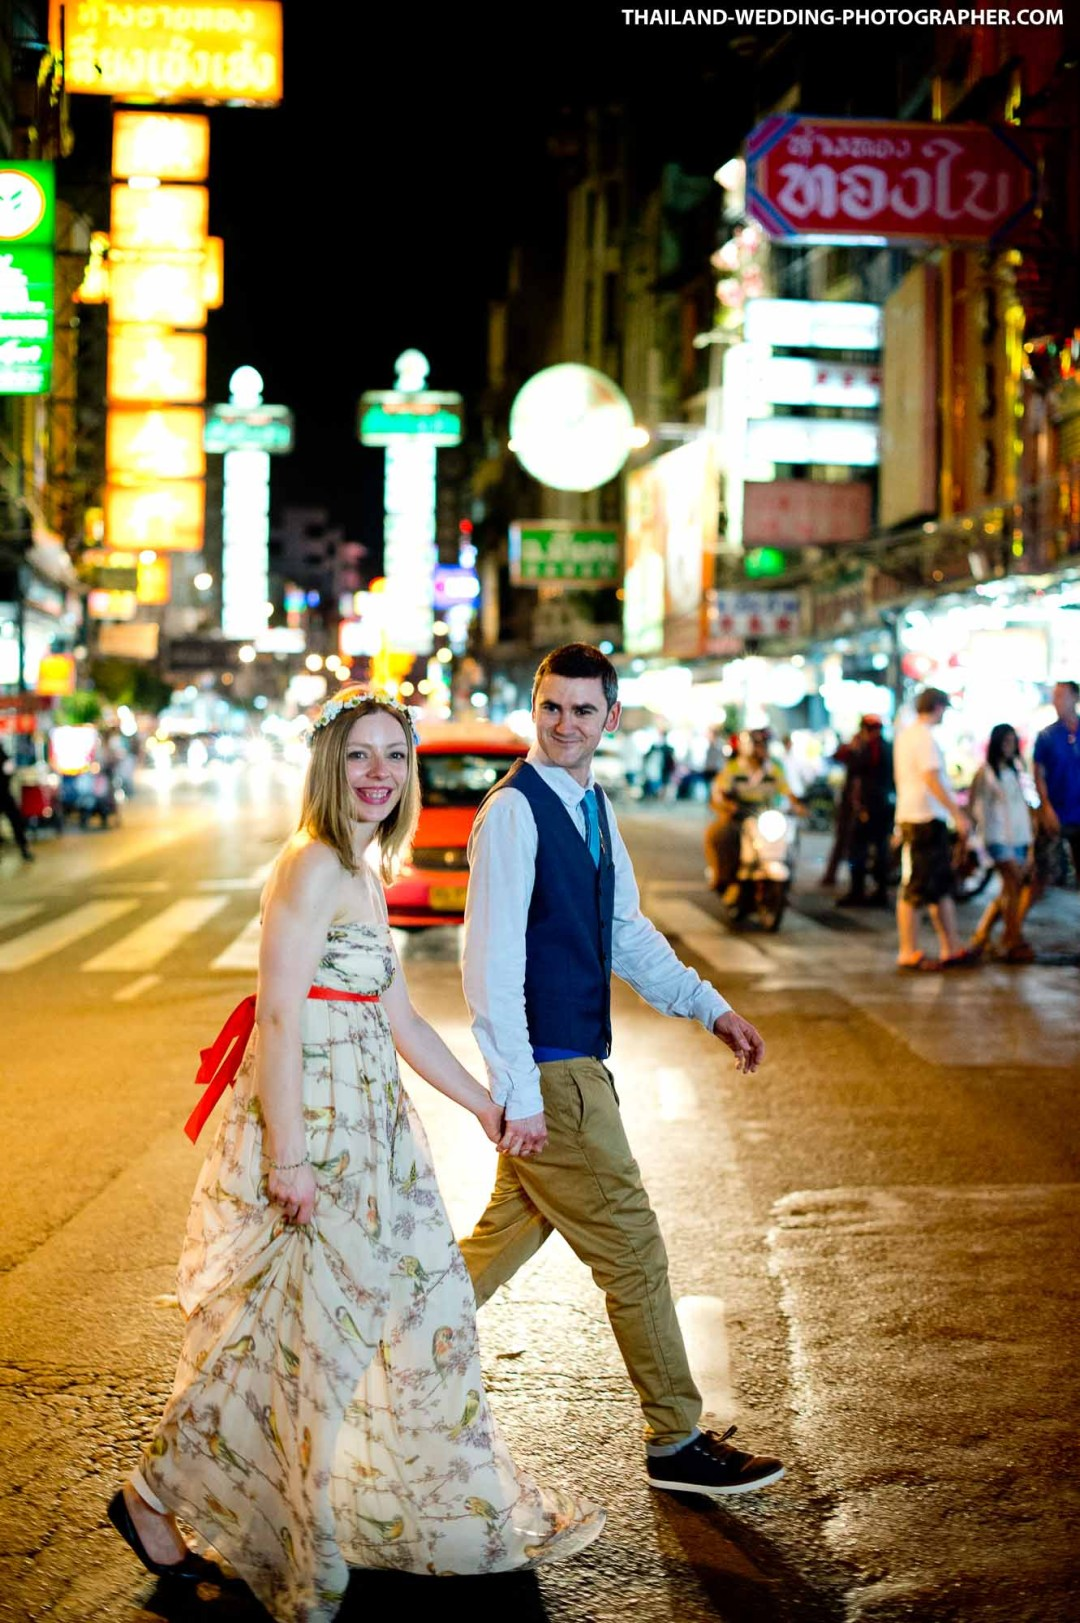 China Town Bangkok Thailand Wedding Photography